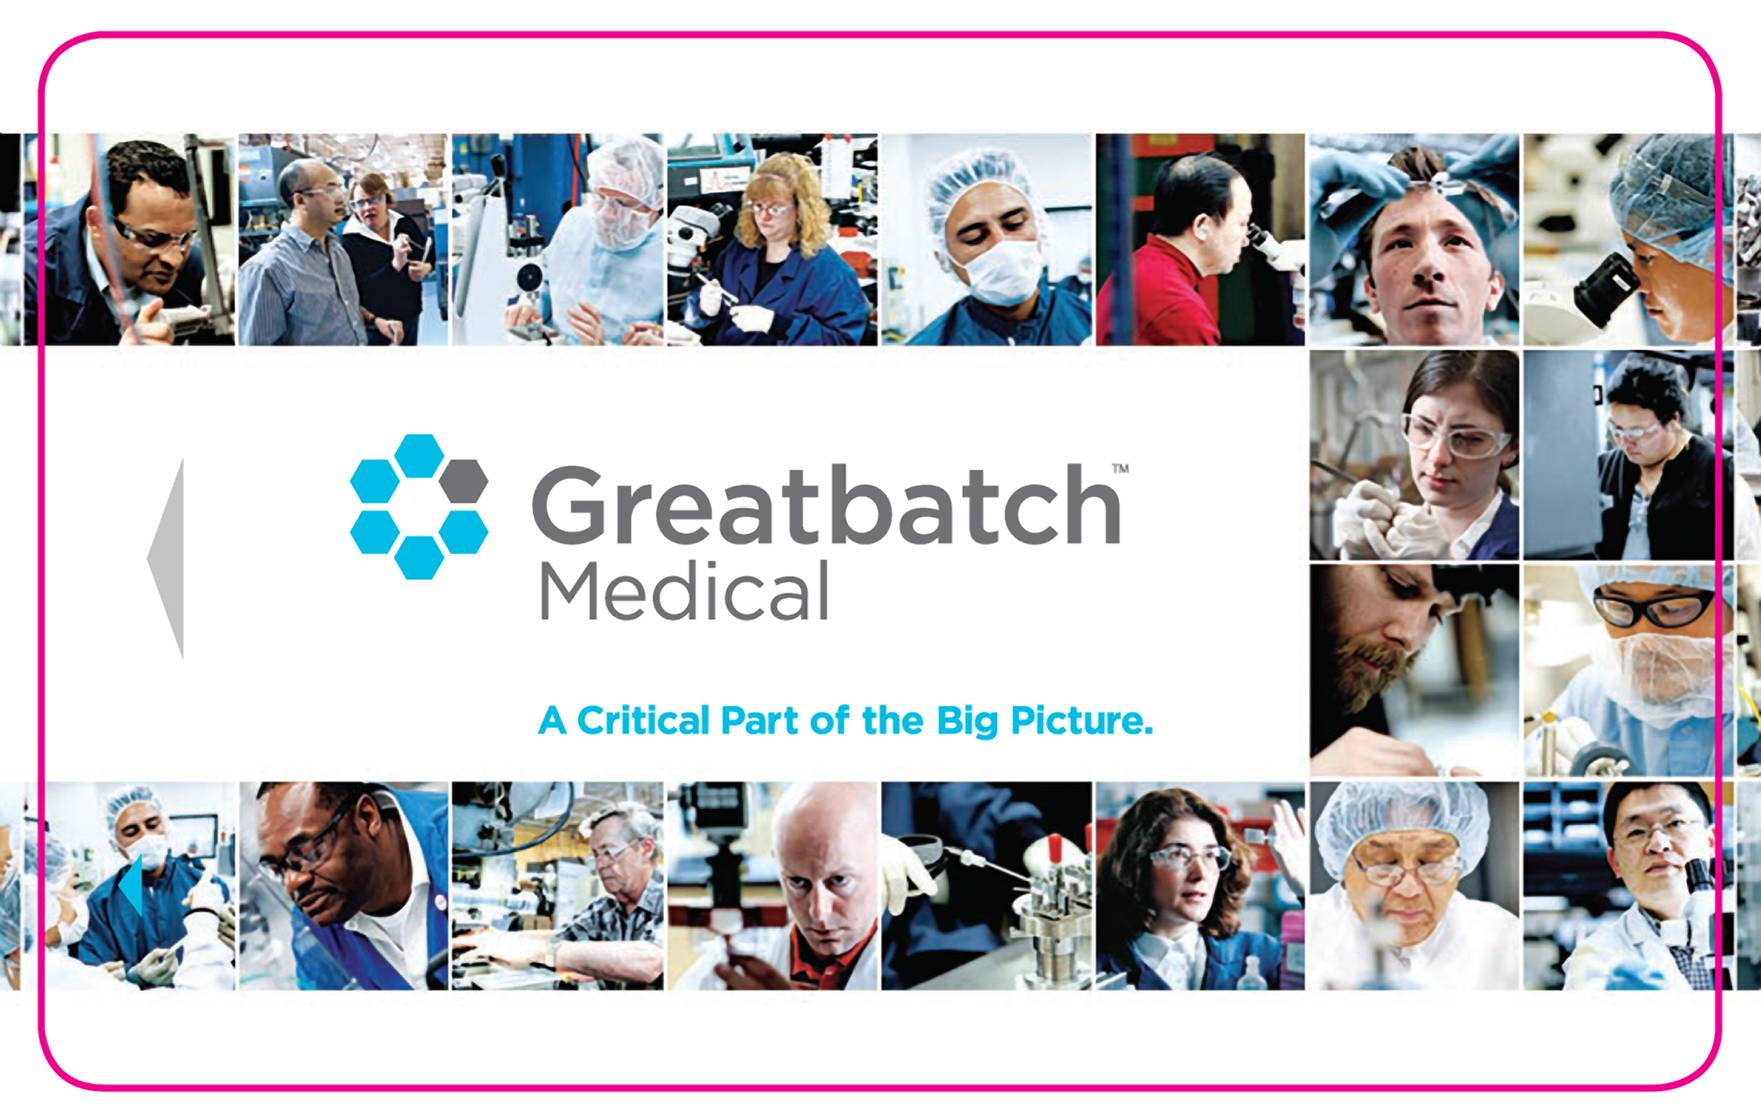 Greatbatch Keycard portraits of researchers and industrial factory workers